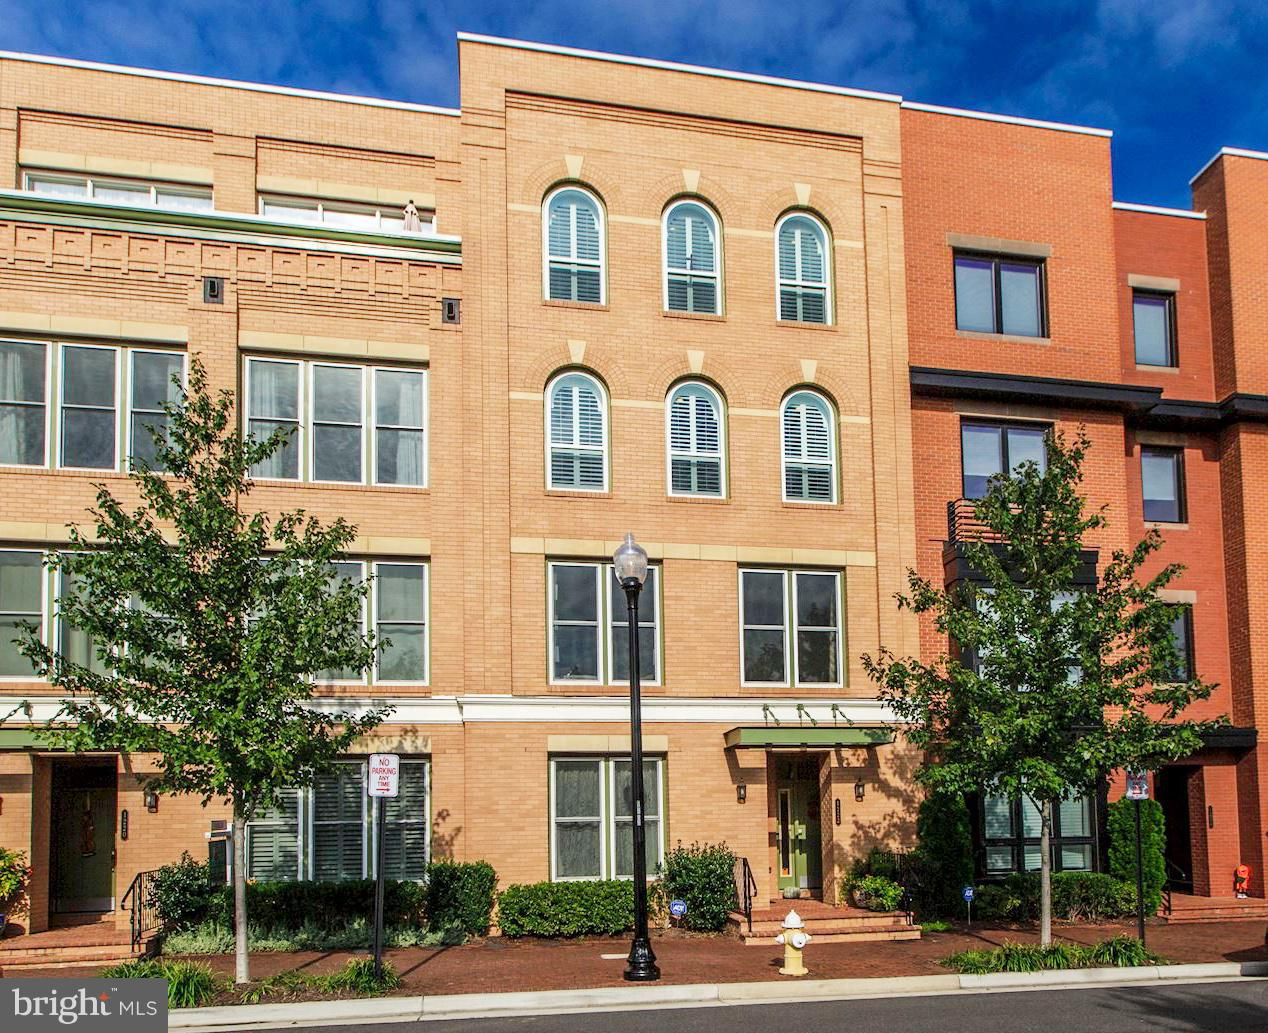 3-yr-old TH w/upgrades galore! EXCELLENT LOCATION - 0.5 miles to Metro, 5 min from Old Town, Potomac Yard shopping, Del Ray, DCA airport, Crystal City, Pentagon City mall, + MORE! Abundant natural light, gourmet kit w/extended cabs, island + quartz counters, stylish patio off kitchen, spacious MBR w/lg walk in closet + spa BA w/Roman shower, dbl vanities, premium tile. Schedule a tour today!